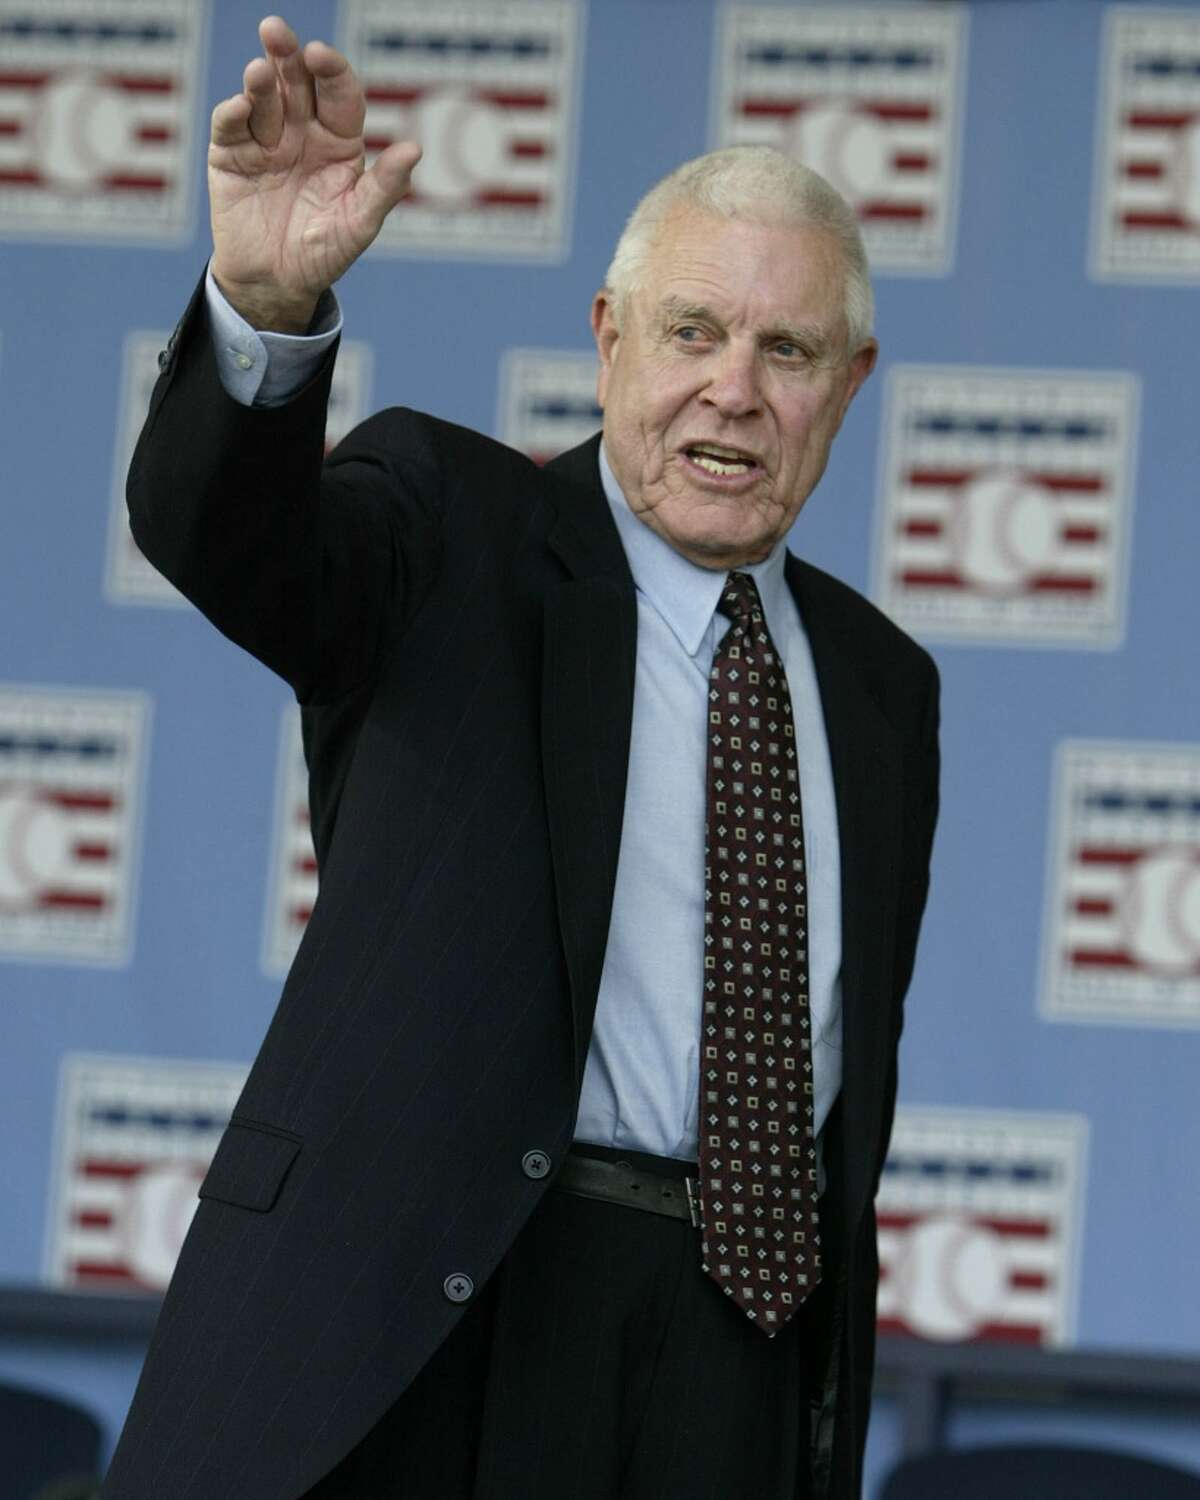 Lon Simmons at the 2004 National Baseball Hall of Fame induction ceremonies in Cooperstown, N.Y. Simmons was the recipient of the Ford C. Frick Award given annually to a baseball broadcaster. (AP Photo/John Dunn)